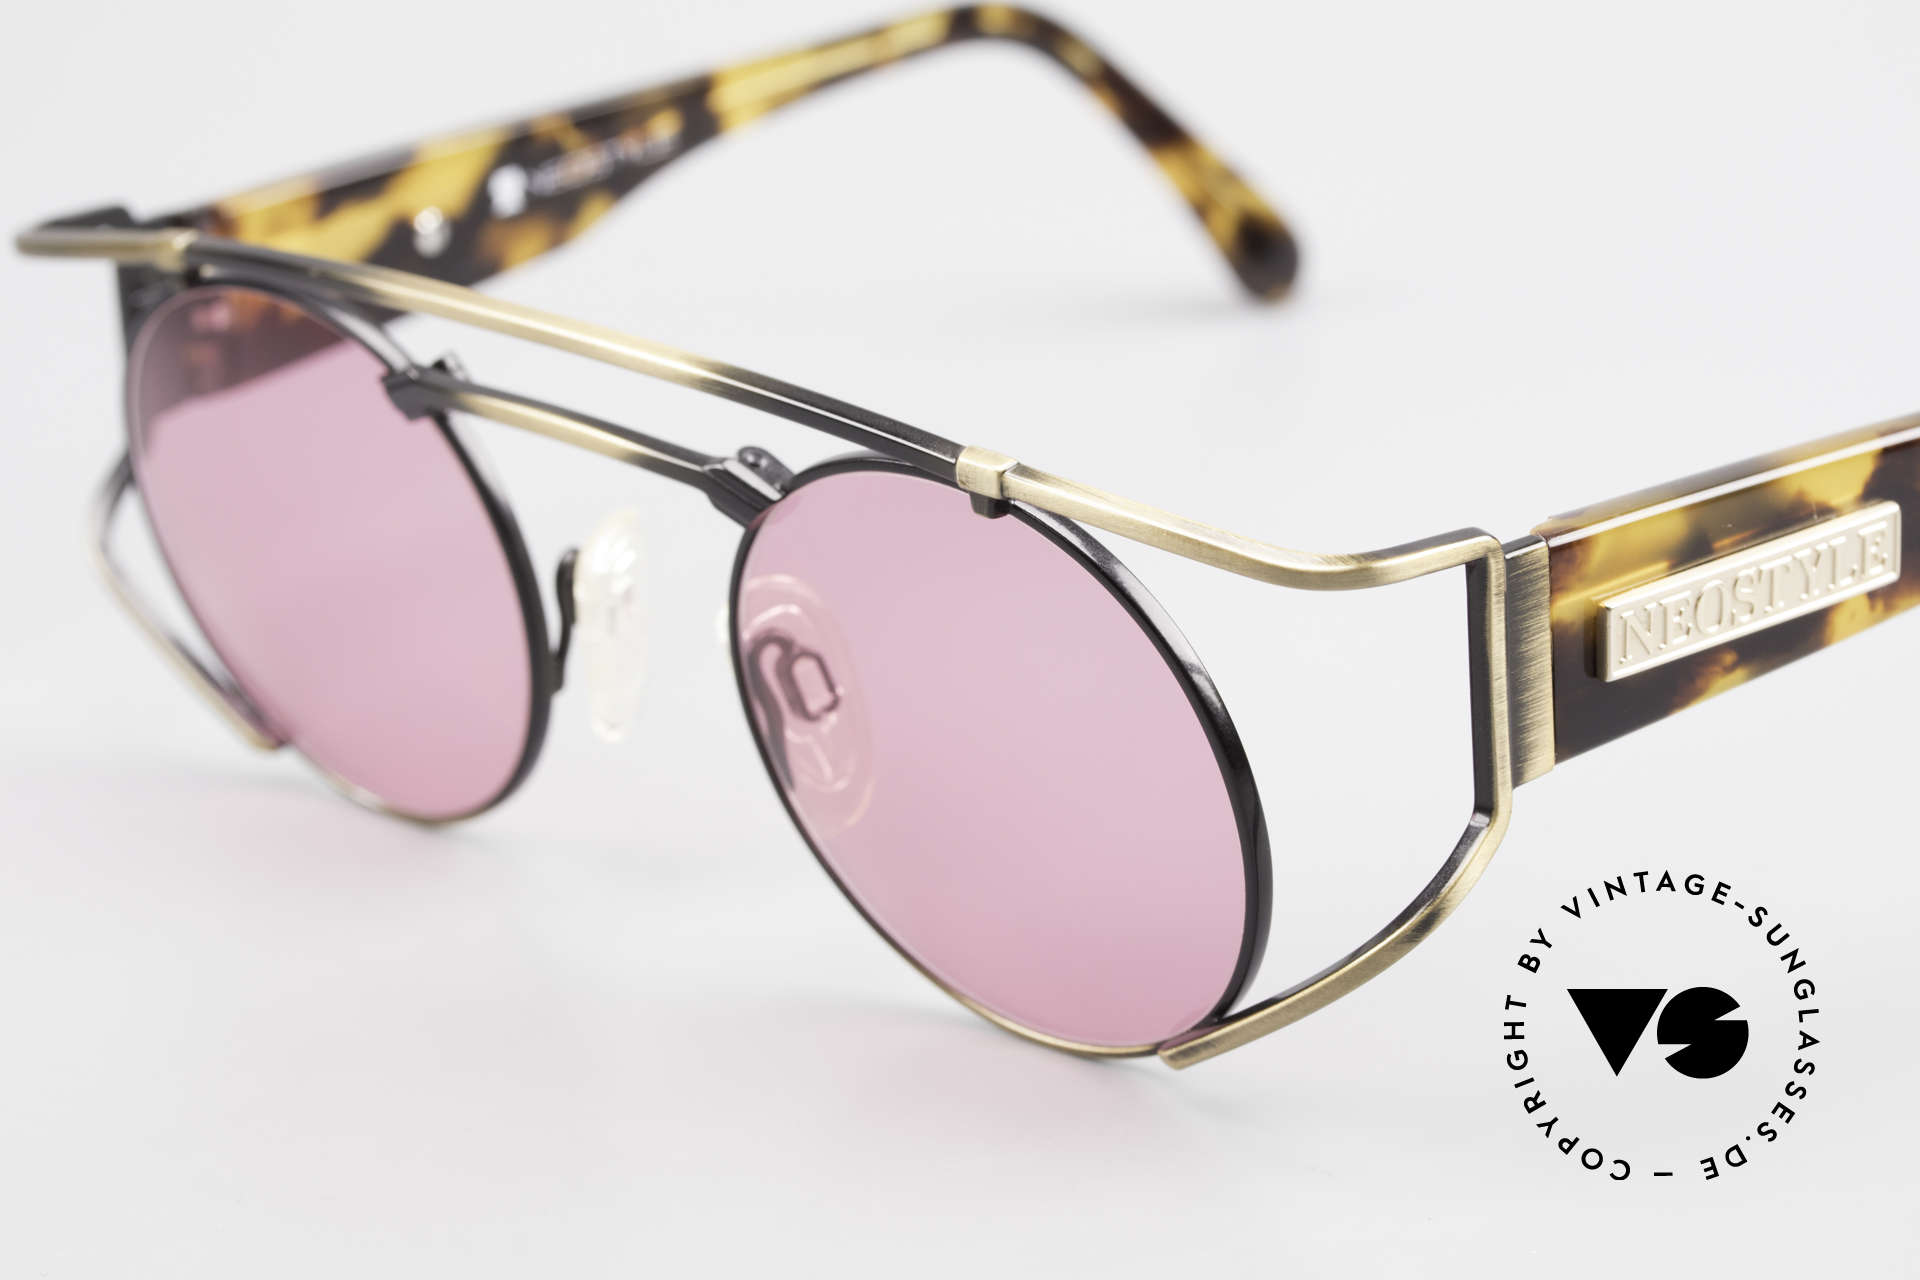 Neostyle Superstar 1 Steampunk Sunglasses Pink, metal parts in a kind of 'antique gold / burnt gold', Made for Men and Women